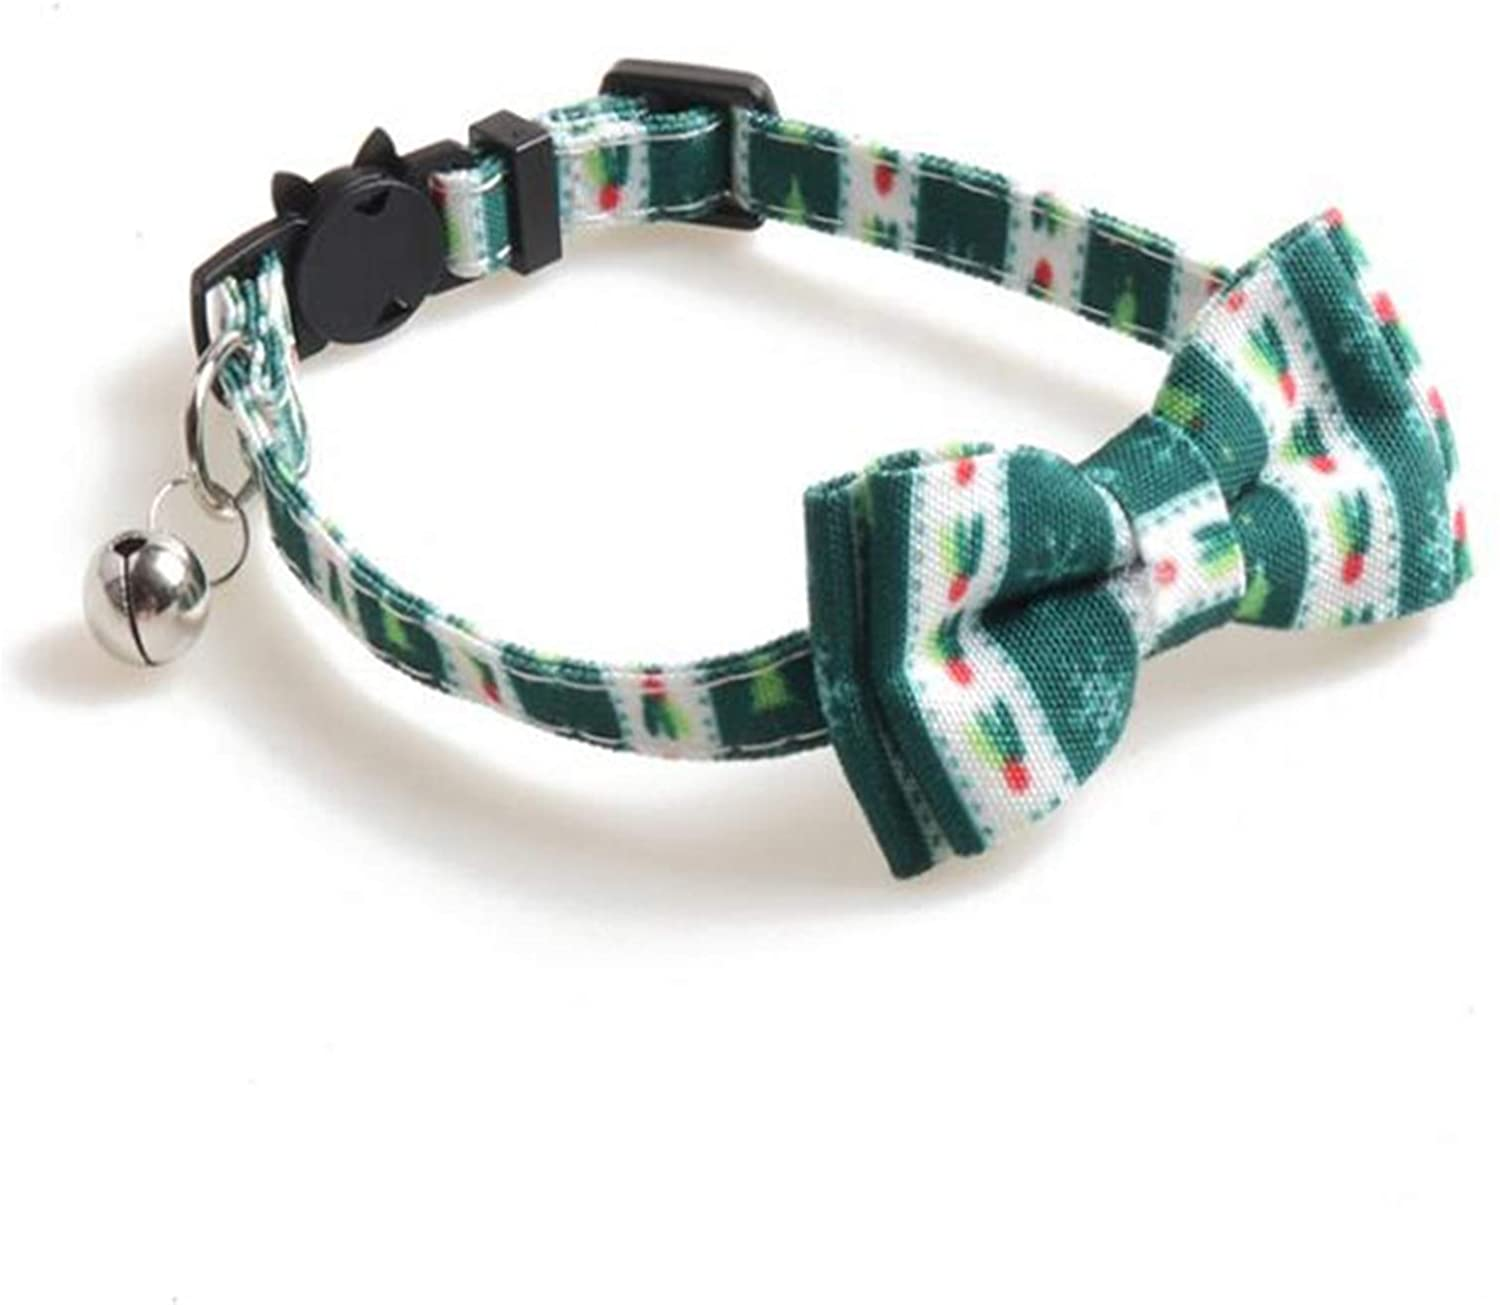 Grneric Christmas Breakaway Buckle Cat Collar with Bell Adjutable Safety Collars for Kitty Puppy